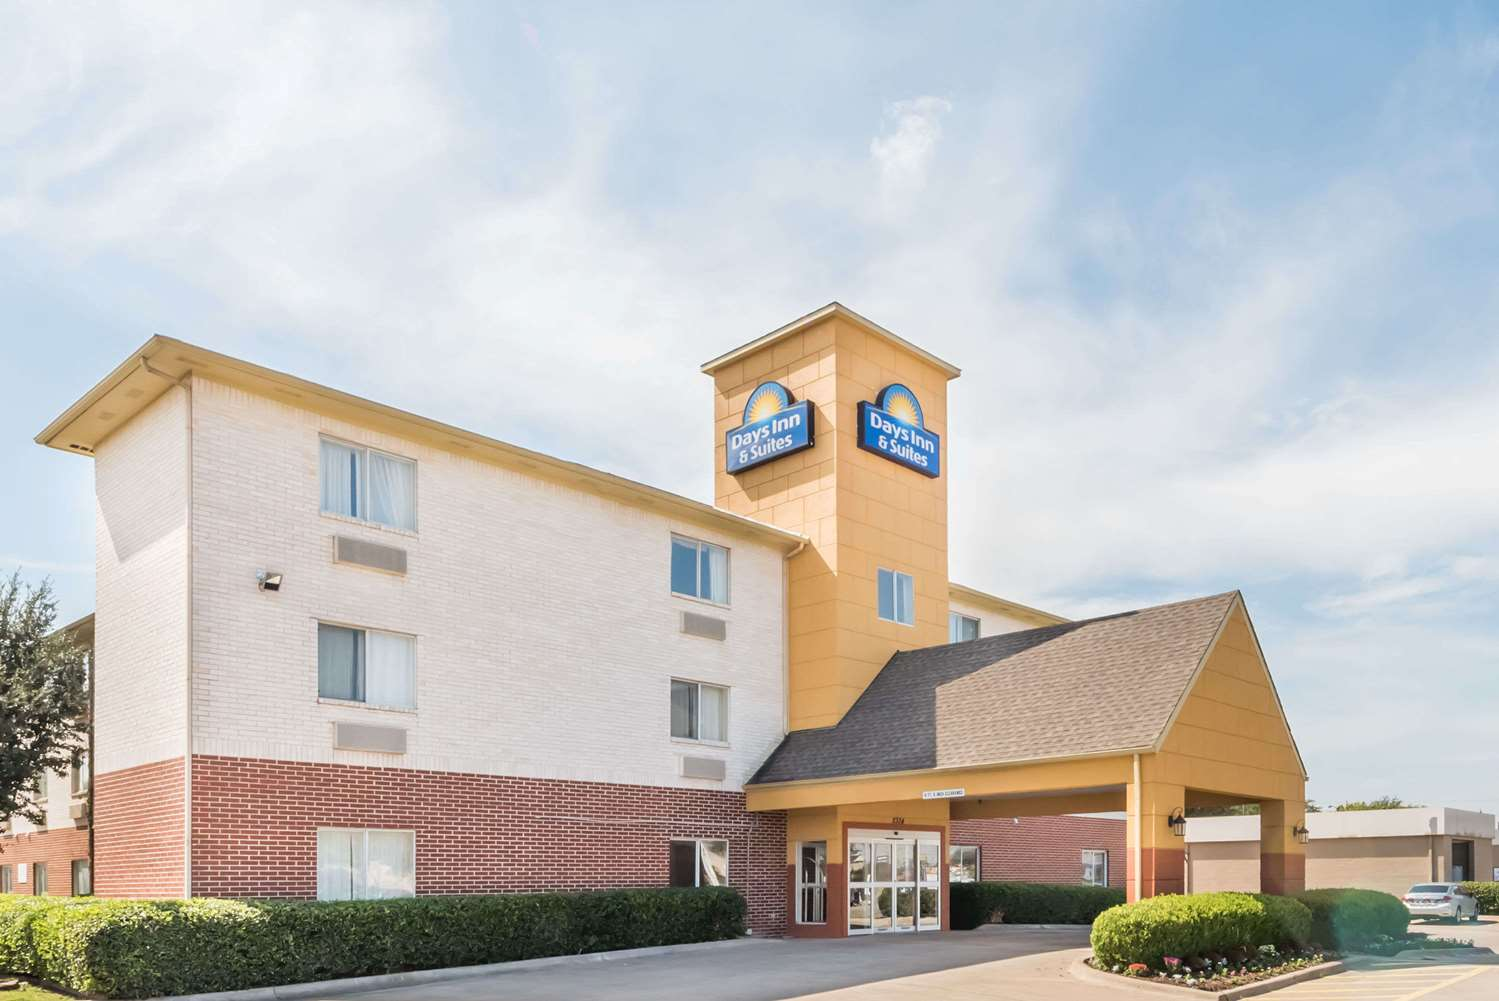 Days Inn & Suites Northwest Dallas